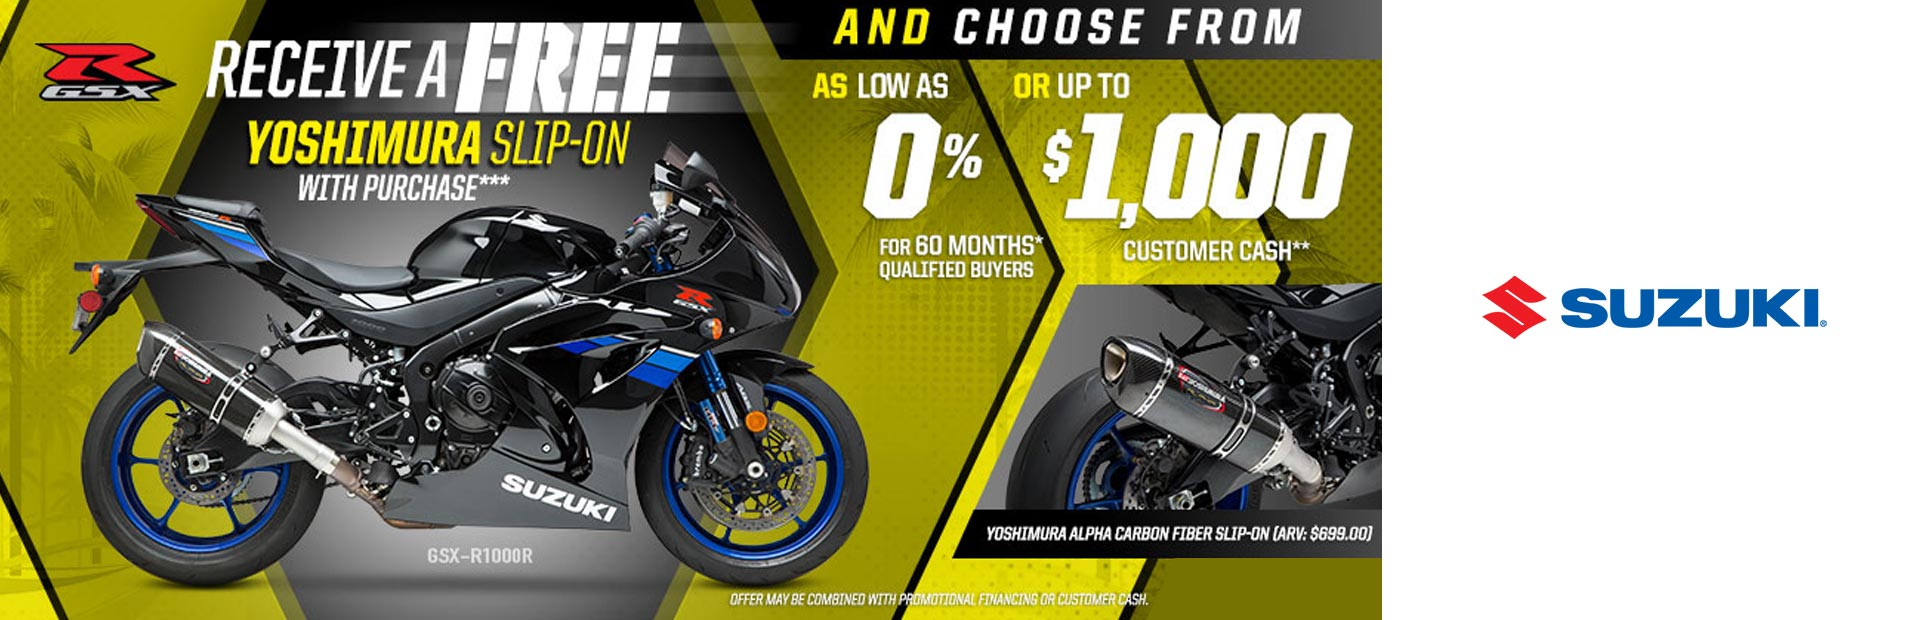 Yoshimura Slip-On Promotion